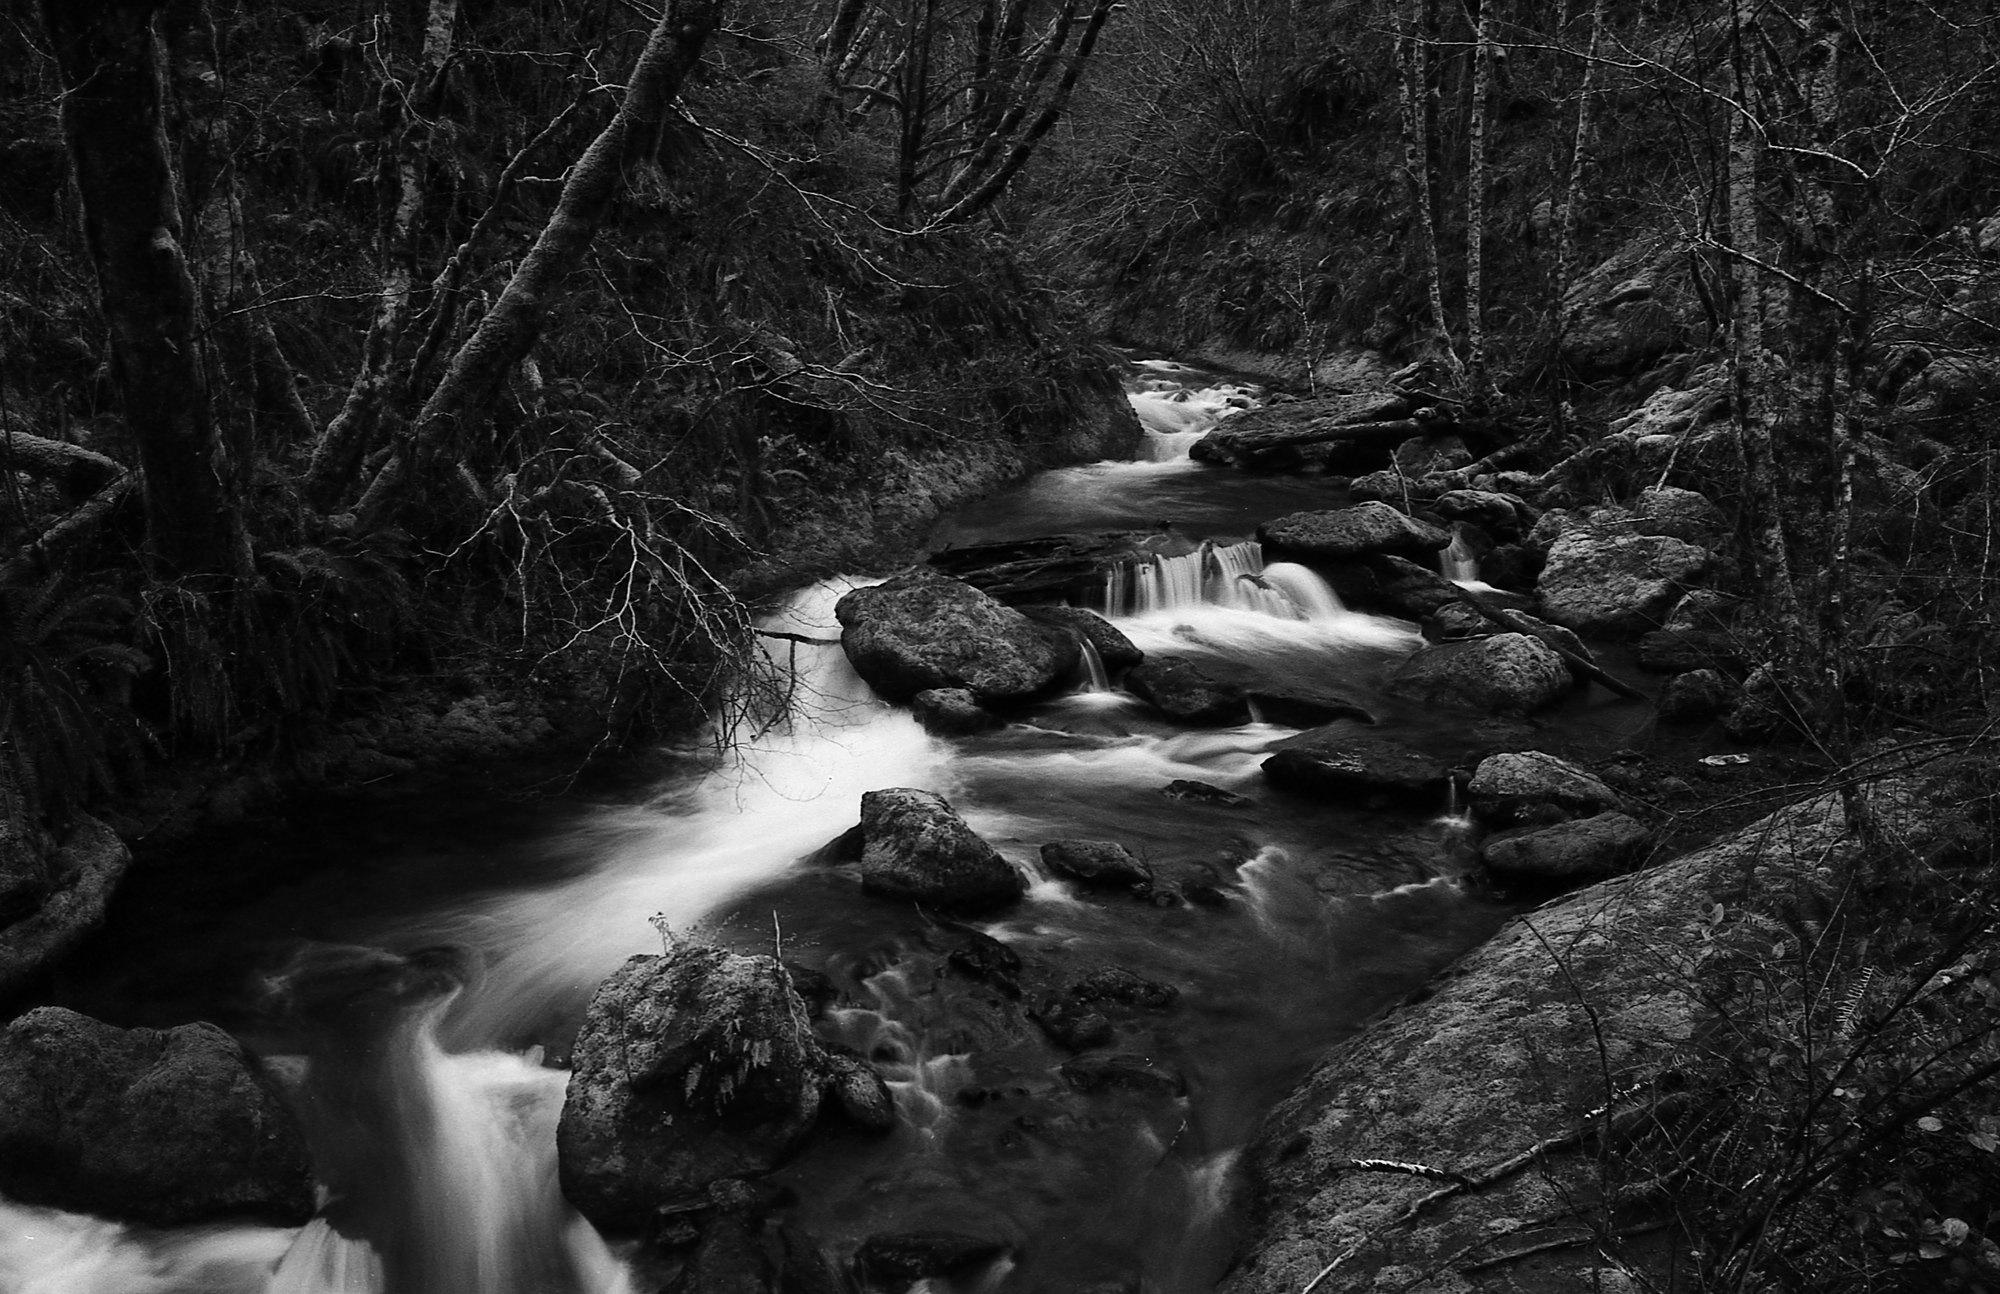 Elk Creek.A little home away from home in the Oregon Coast Range. Nikon F3HPNikkor 28mm f3.5 ai. Ilford Pan F Plus 50Self developed in Kodak Xtol (stock replenished).